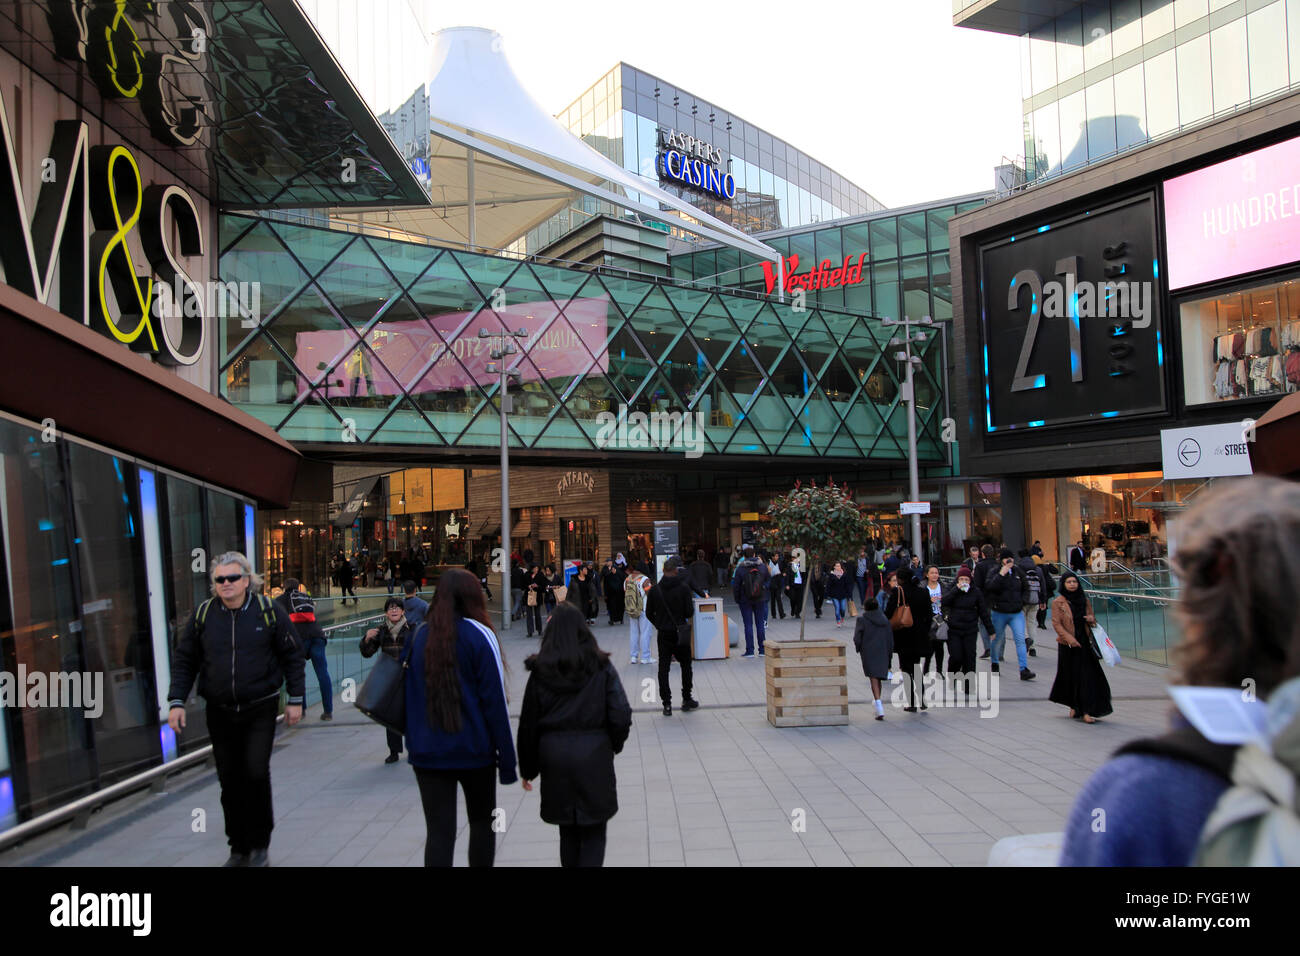 People shopping at Westfield shopping centre, Stratford, London, England, UK - Stock Image